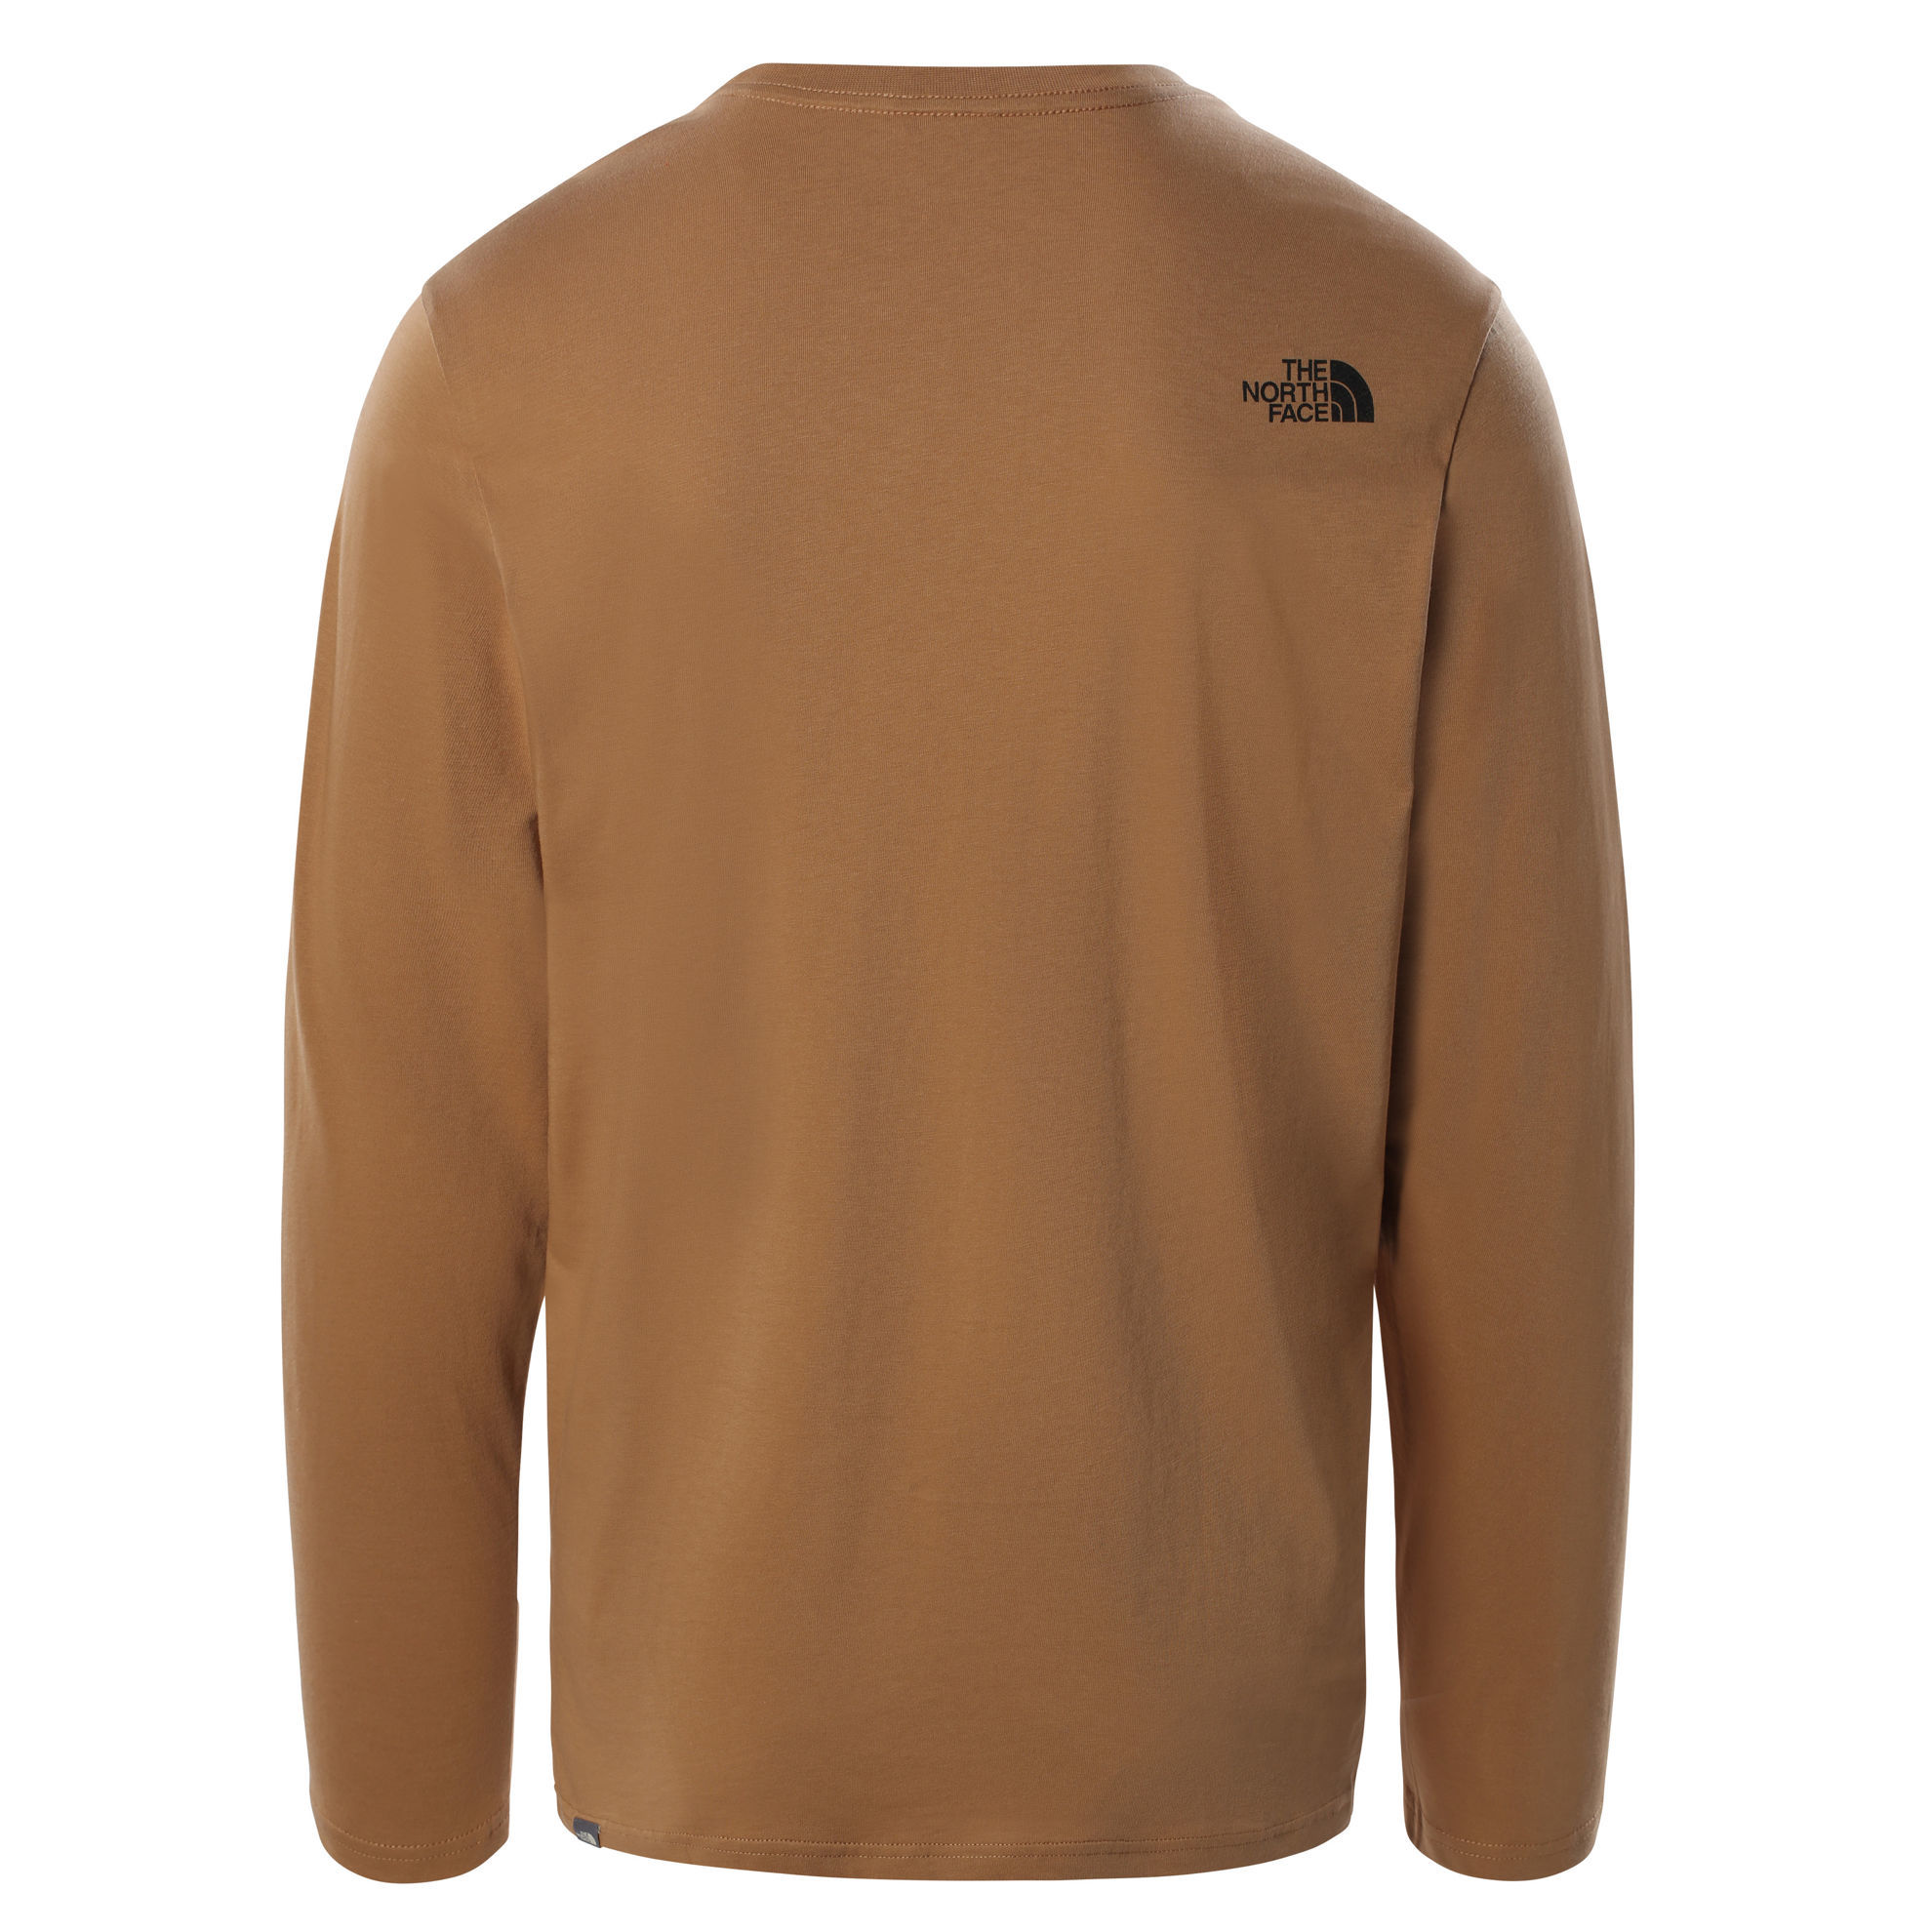 Bilde av The North Face M L/S Image Ideals Tee, Utility Brown